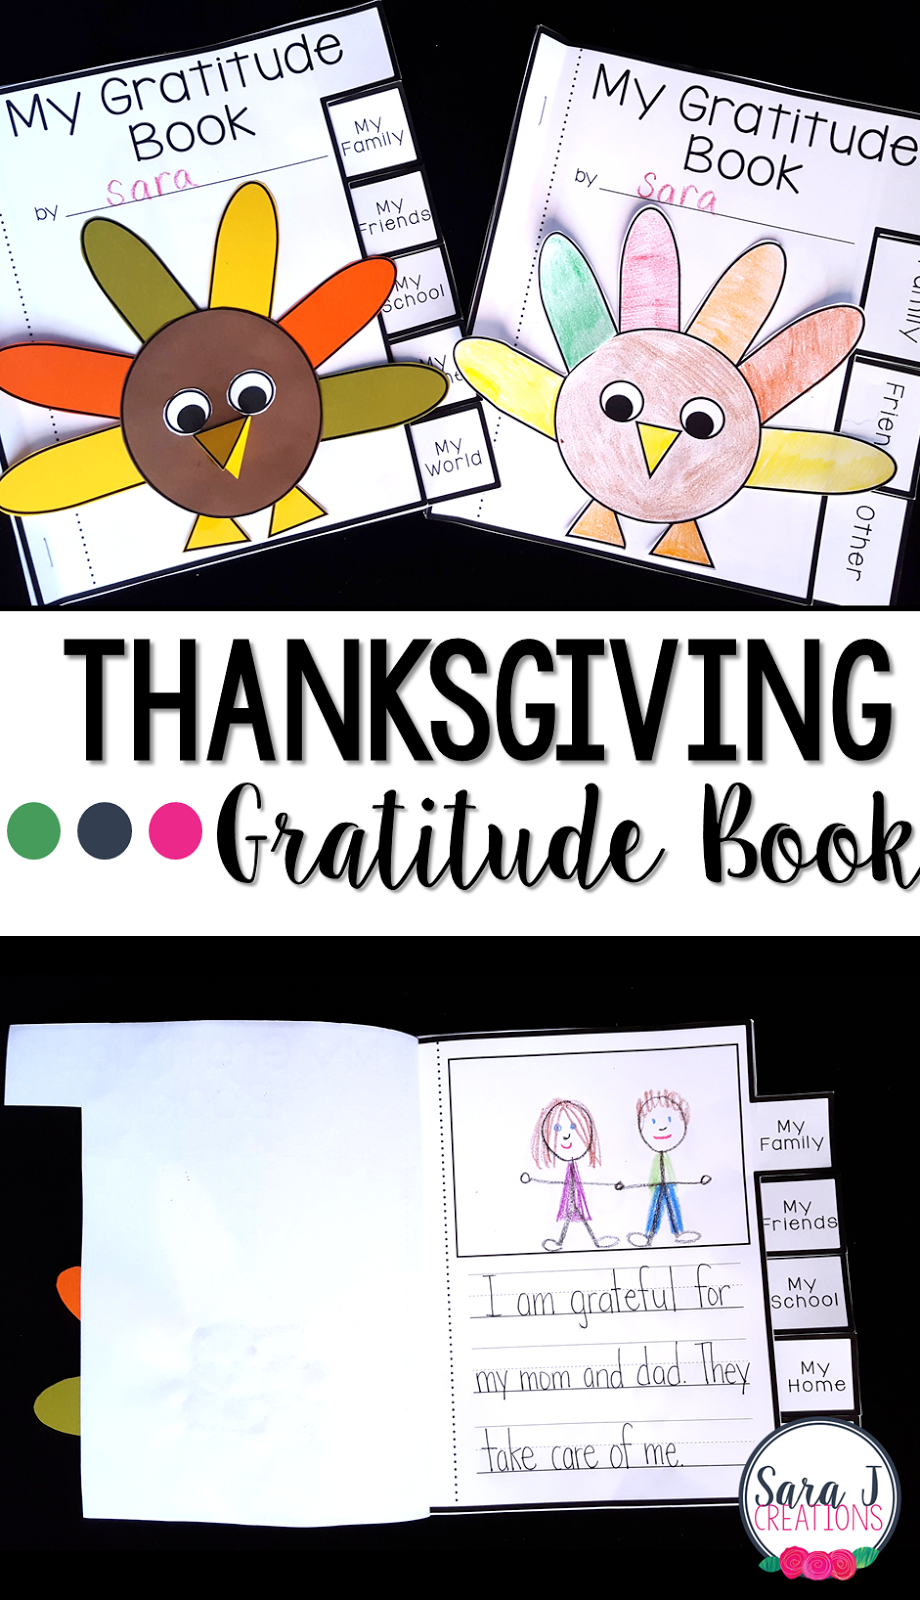 A Thanksgiving Gratitude book for kids to make!  Perfect activity to reflect on what you are thankful for this year.